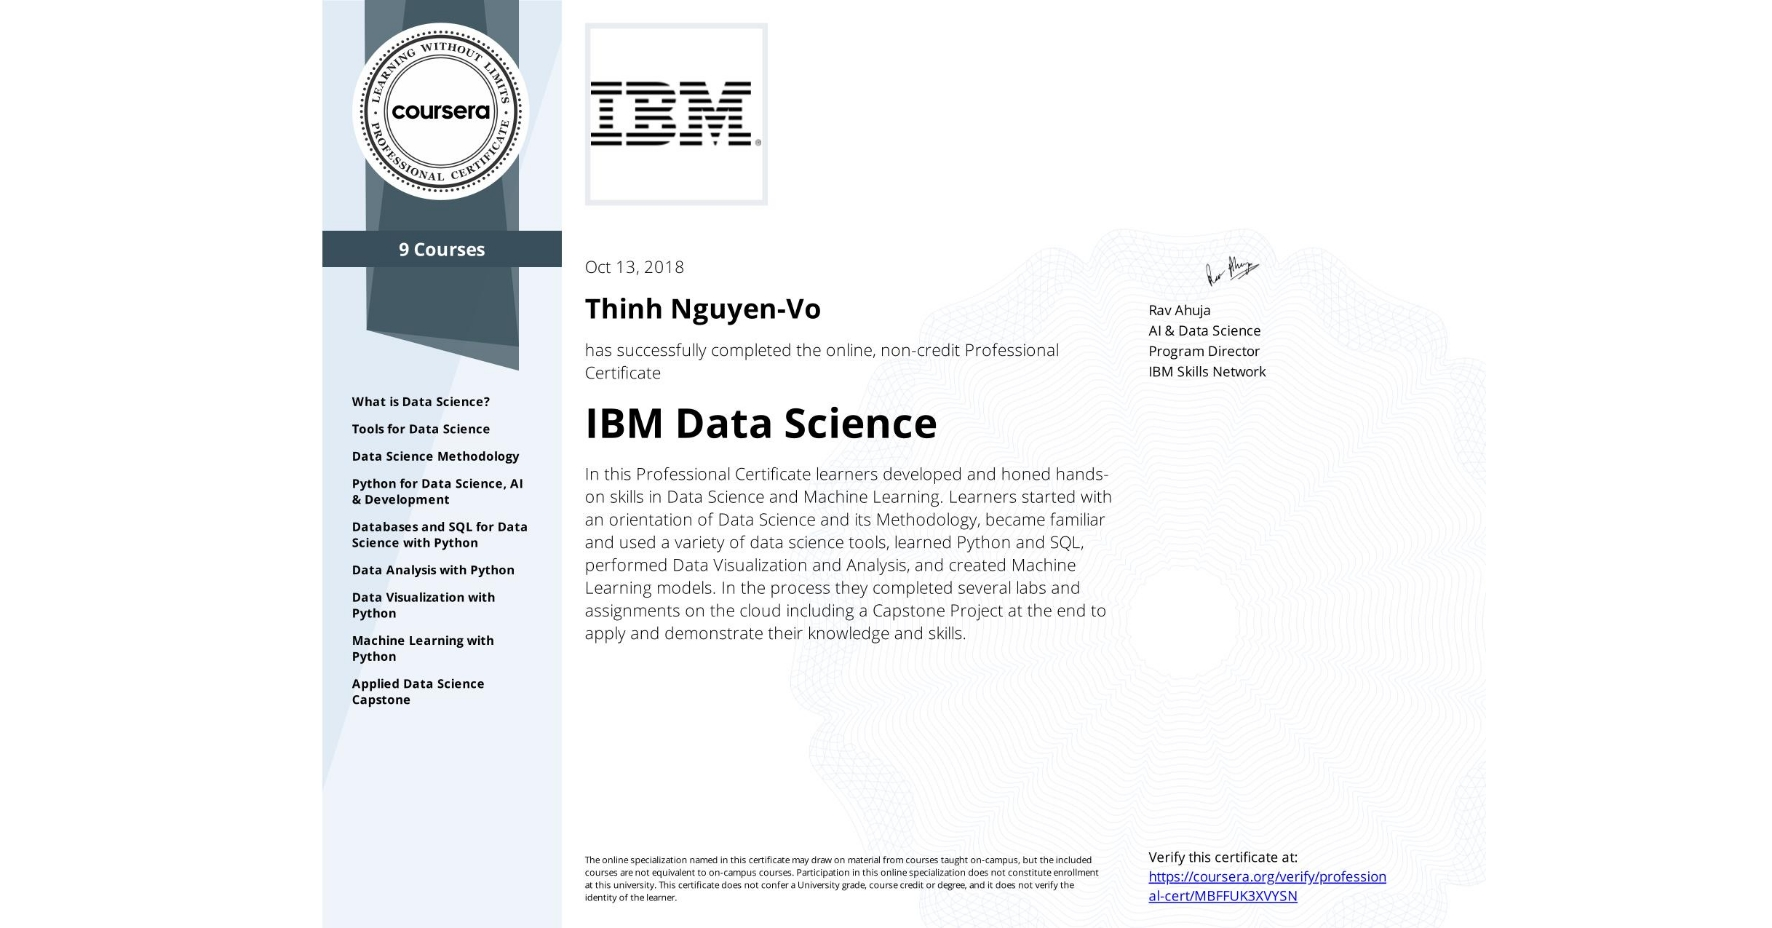 View certificate for Thinh Nguyen-Vo, IBM Data Science, offered through Coursera. In this Professional Certificate learners developed and honed hands-on skills in Data Science and Machine Learning. Learners started with an orientation of Data Science and its Methodology, became familiar and used a variety of data science tools, learned Python and SQL, performed Data Visualization and Analysis, and created Machine Learning models.  In the process they completed several labs and assignments on the cloud including a Capstone Project at the end to apply and demonstrate their knowledge and skills.